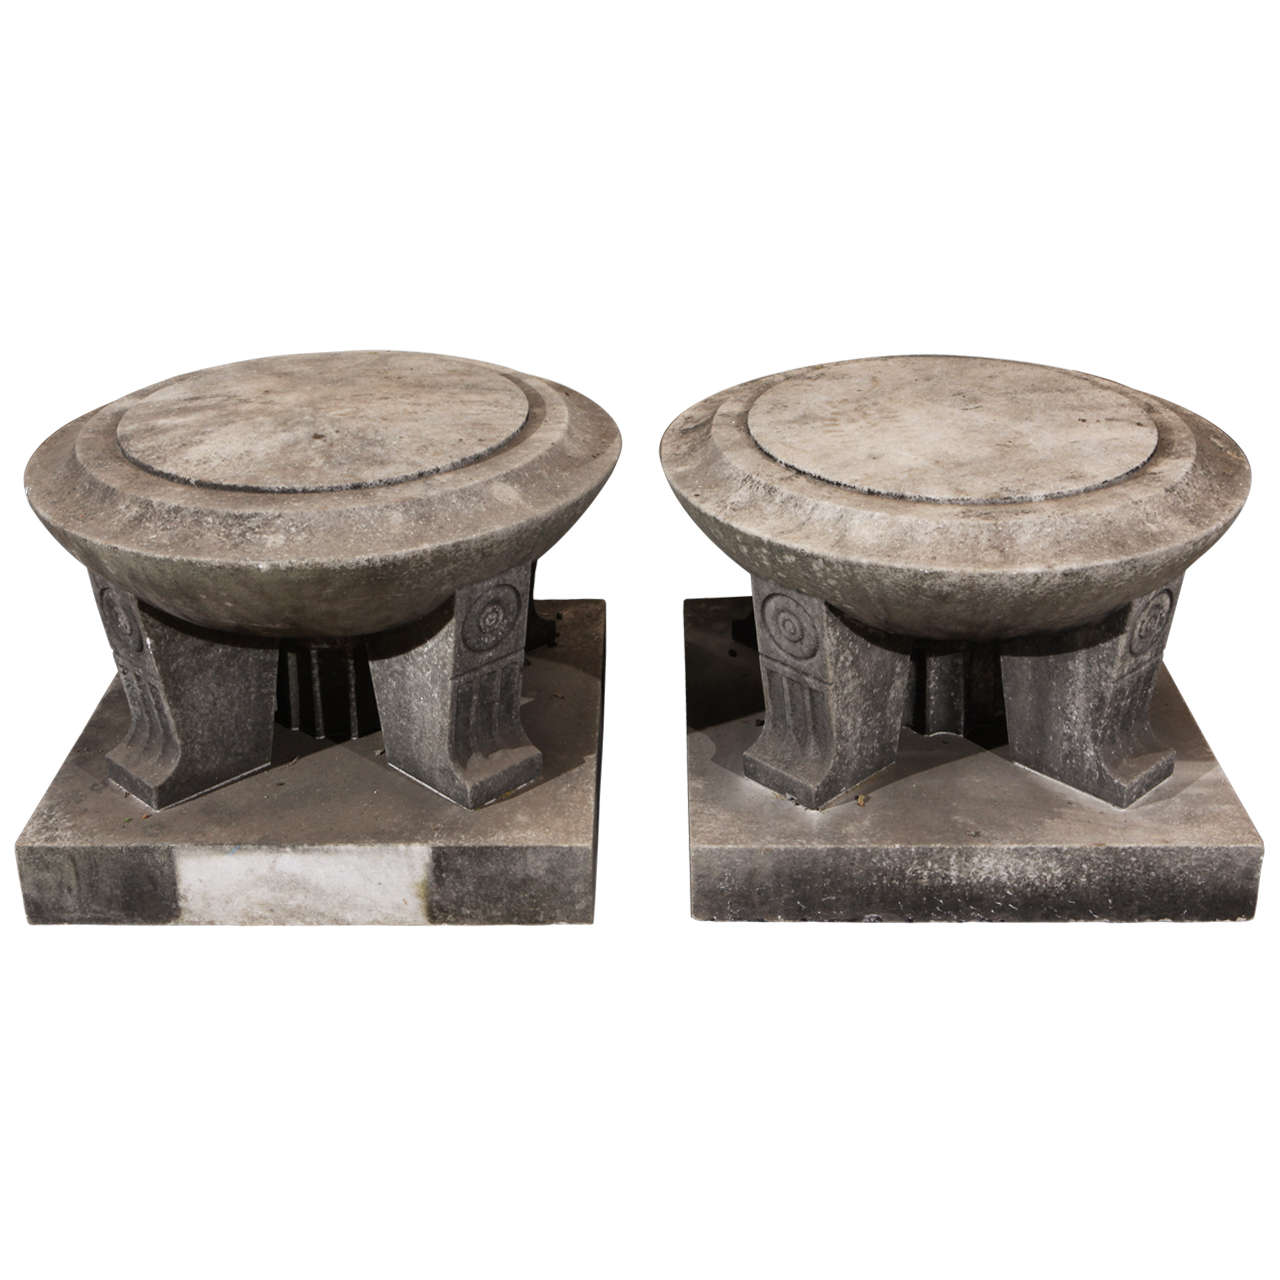 Frank lloyd wright style marble ornaments at 1stdibs for Wright style